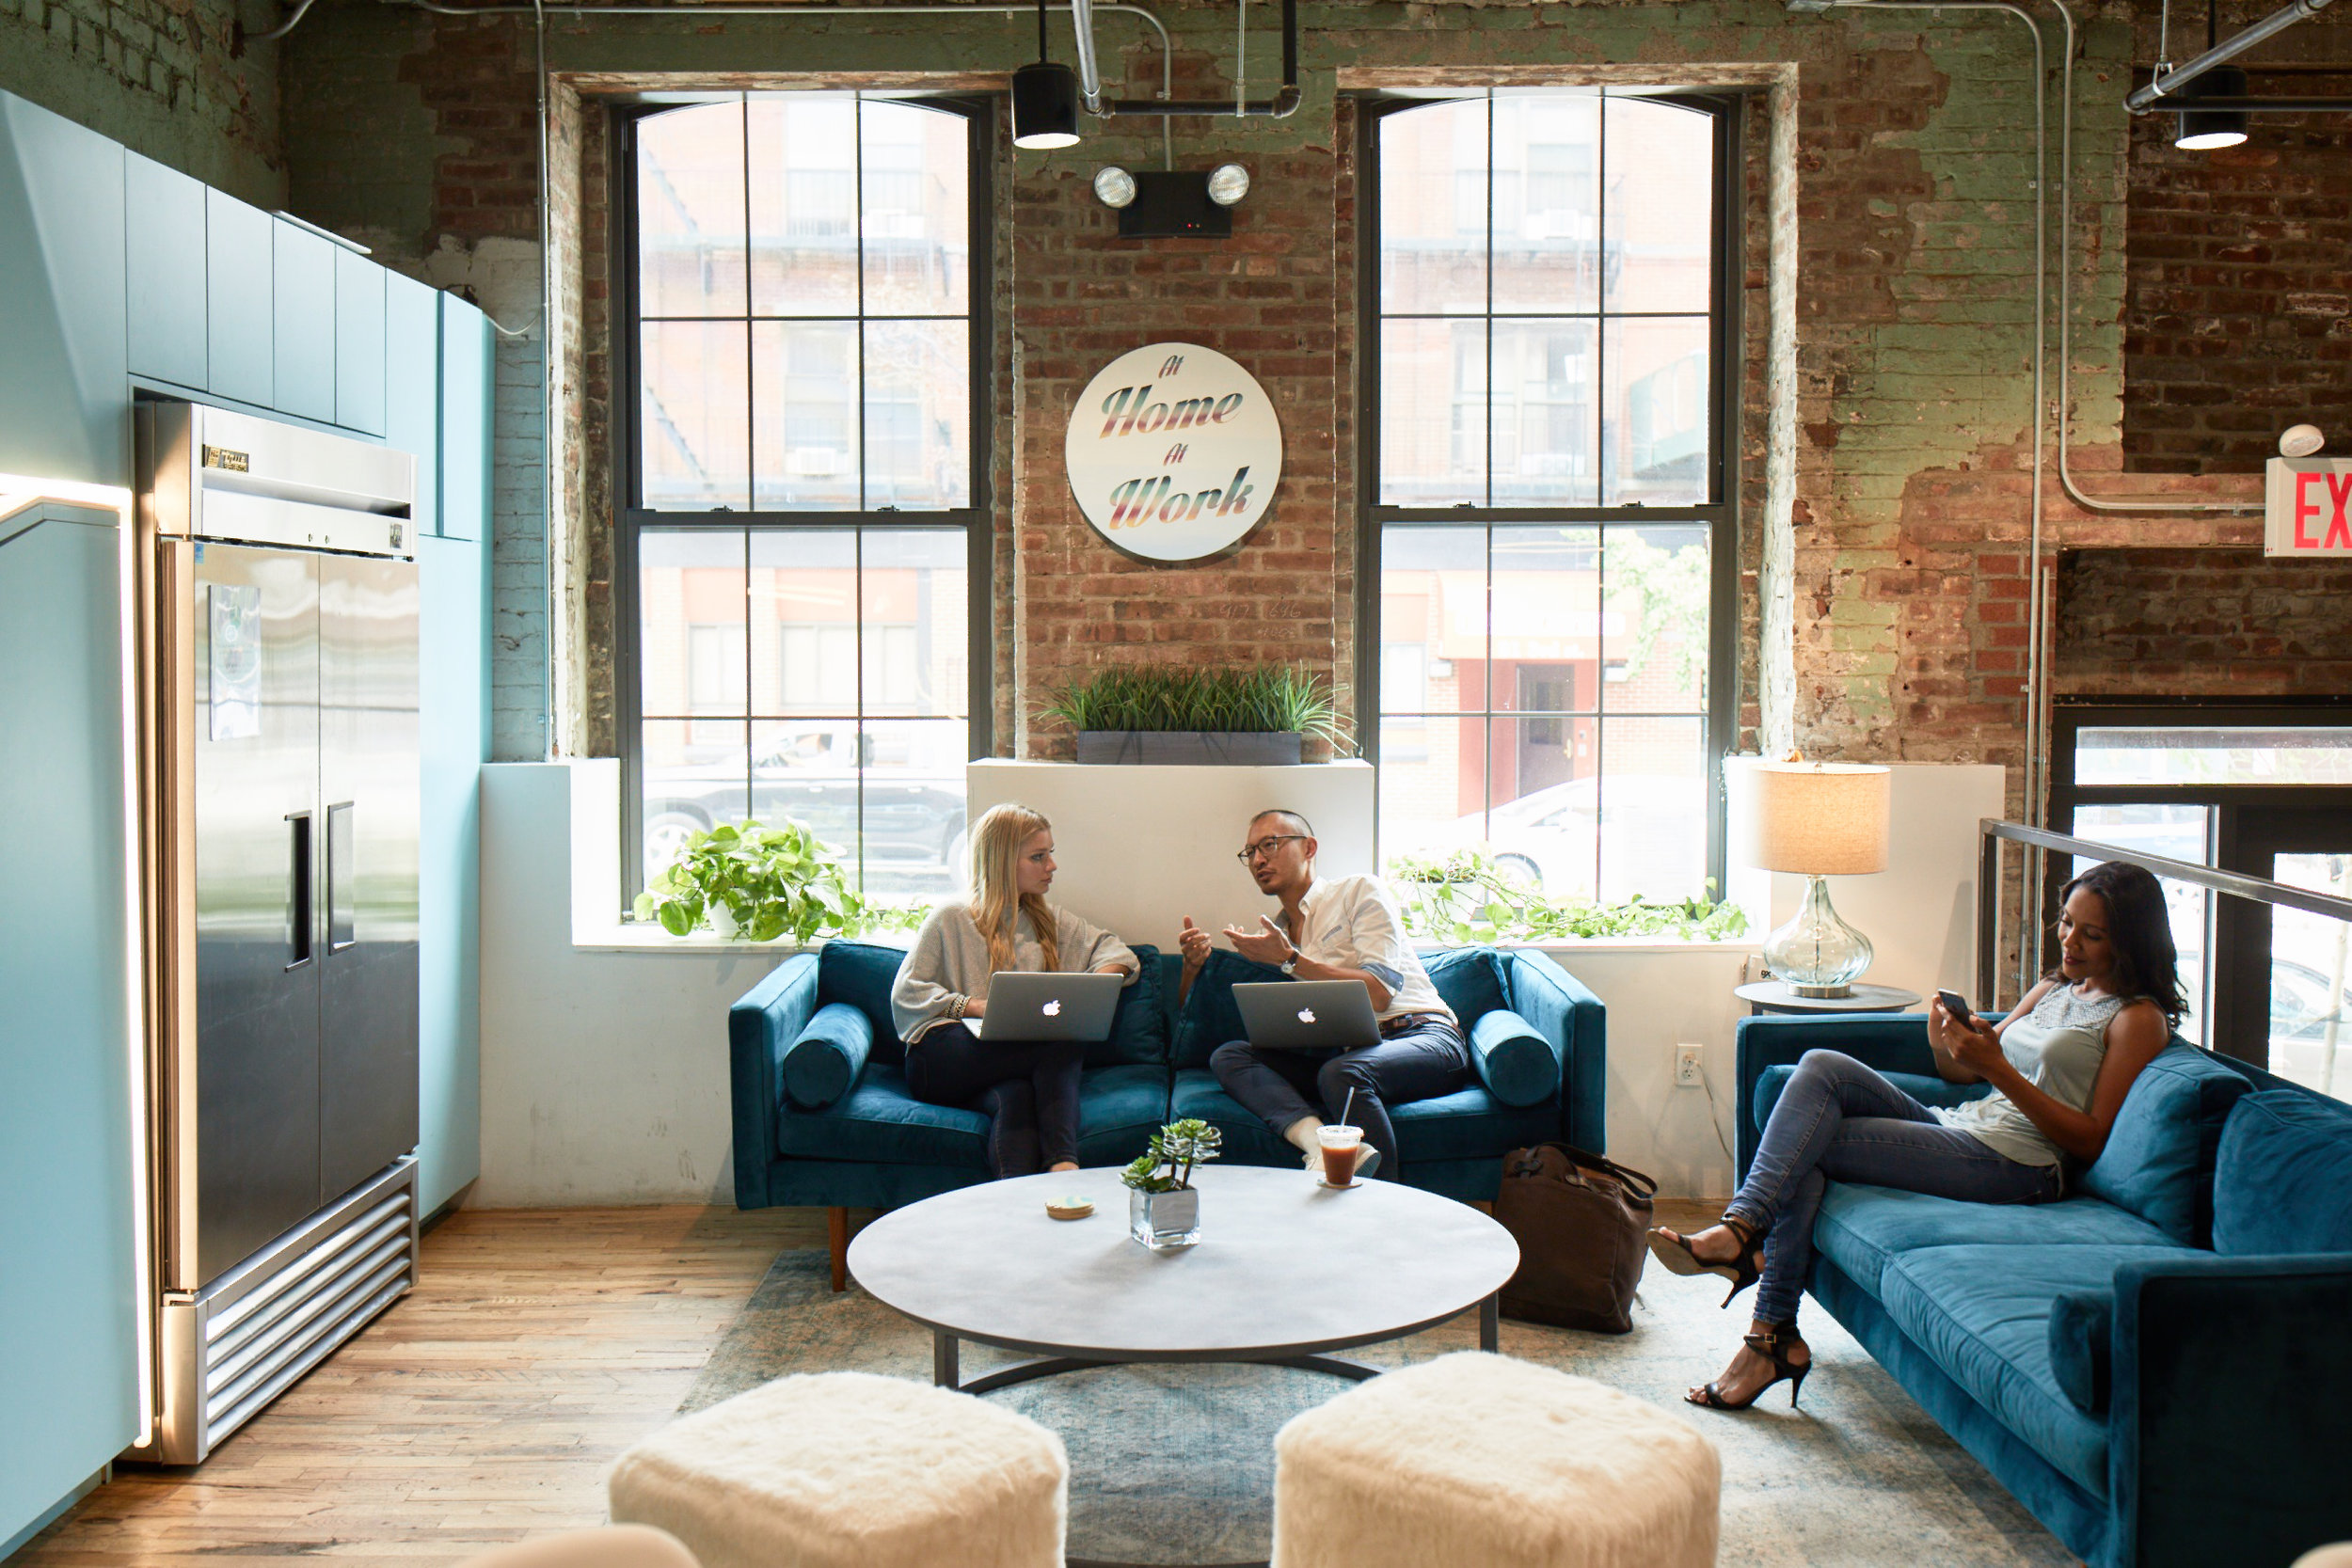 Business professionals collaborating in a shared office space